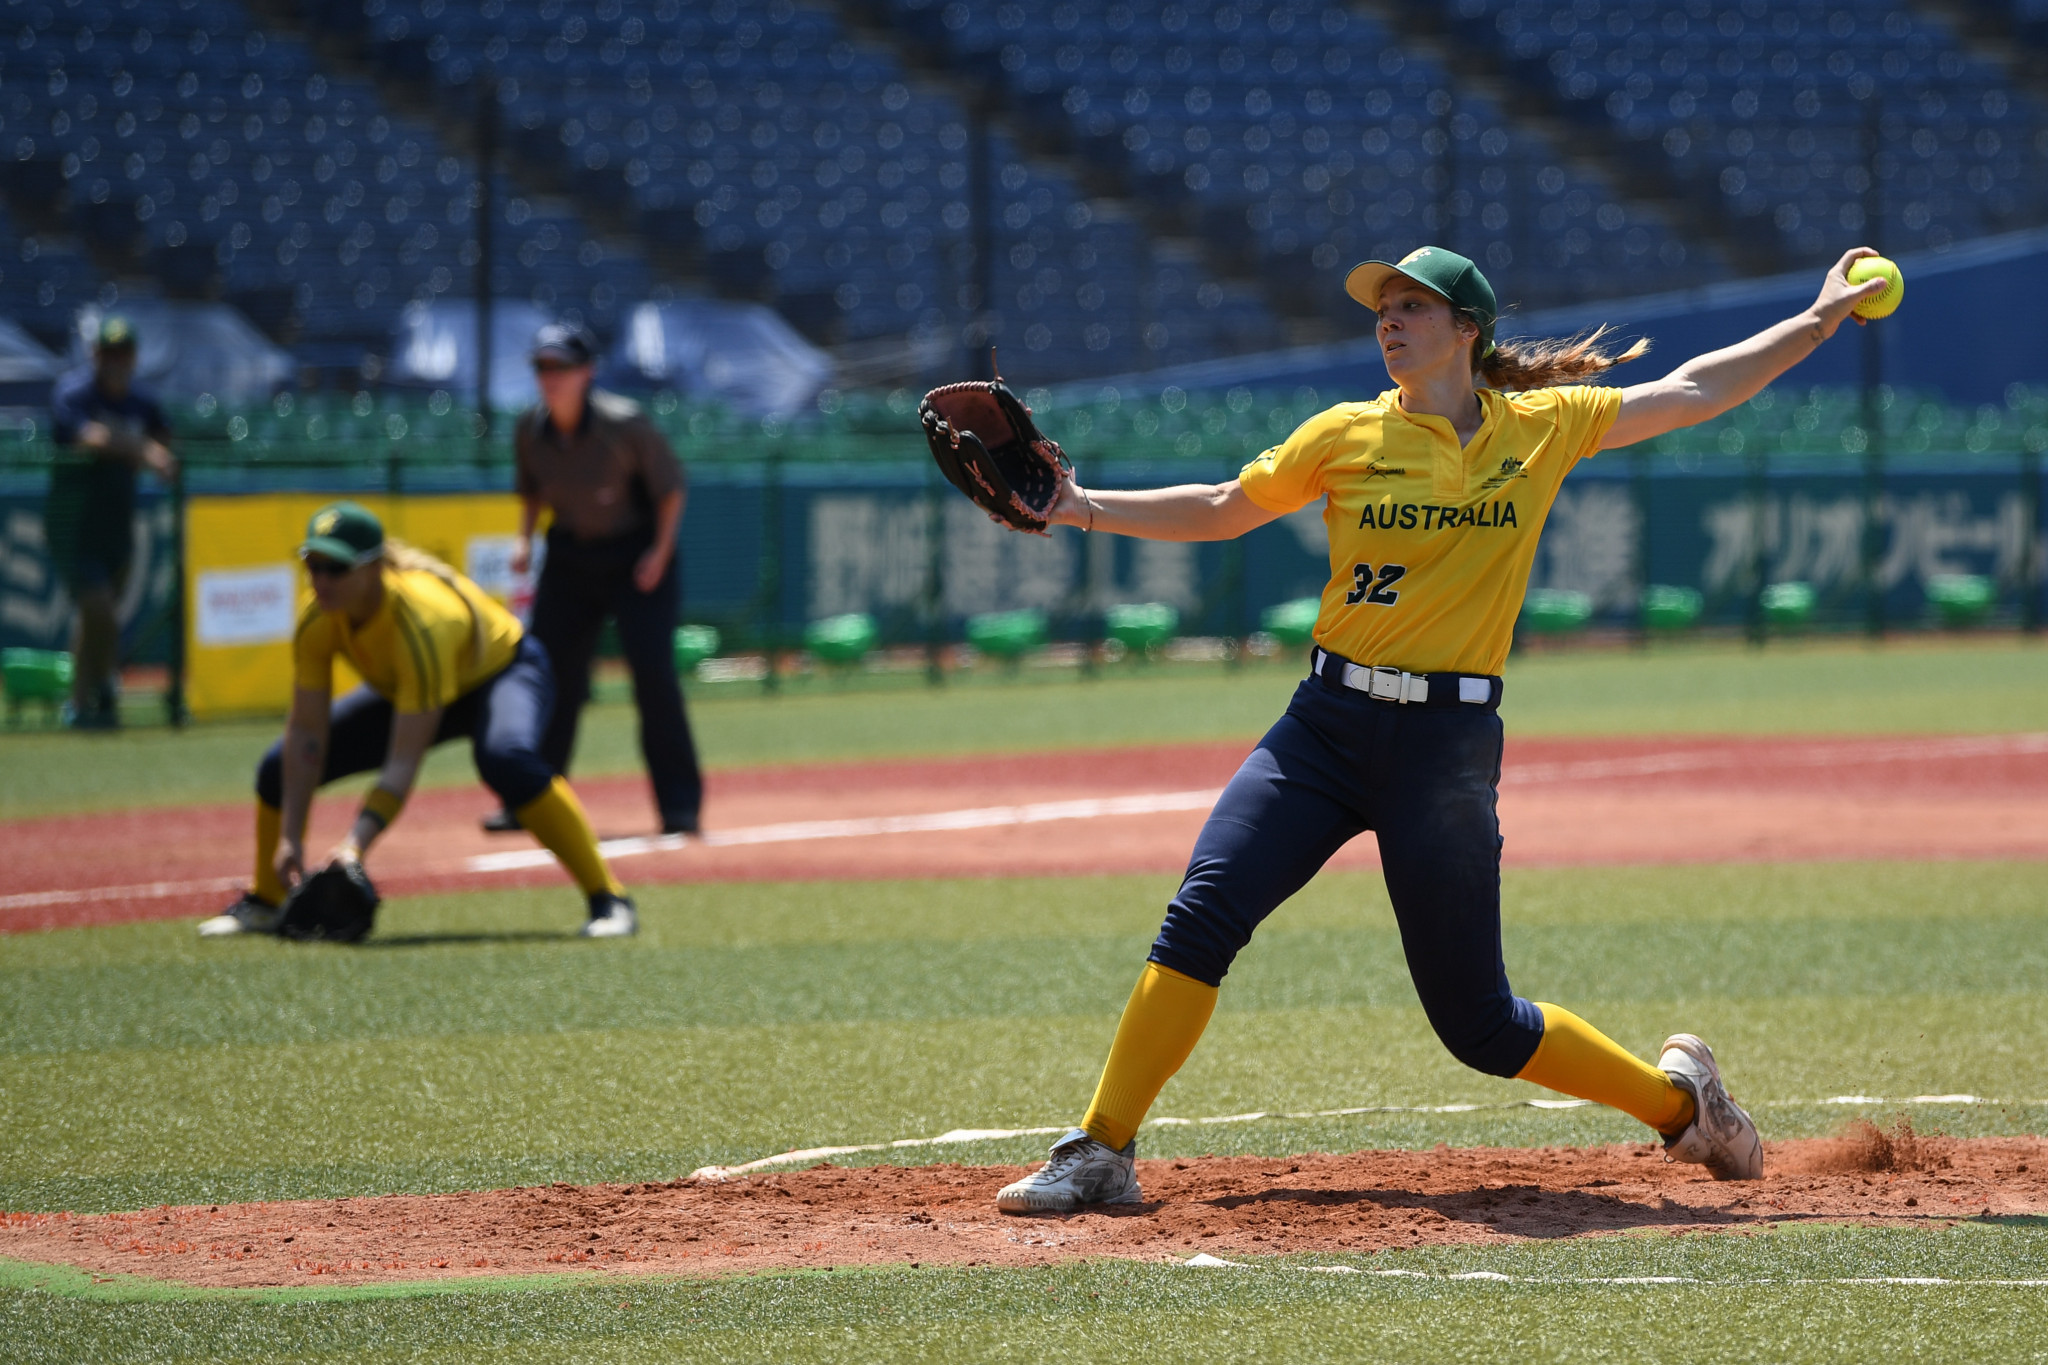 Softball is set to make its return at the Olympics after being dropped from the programme following Beijing 2008 ©Getty Images